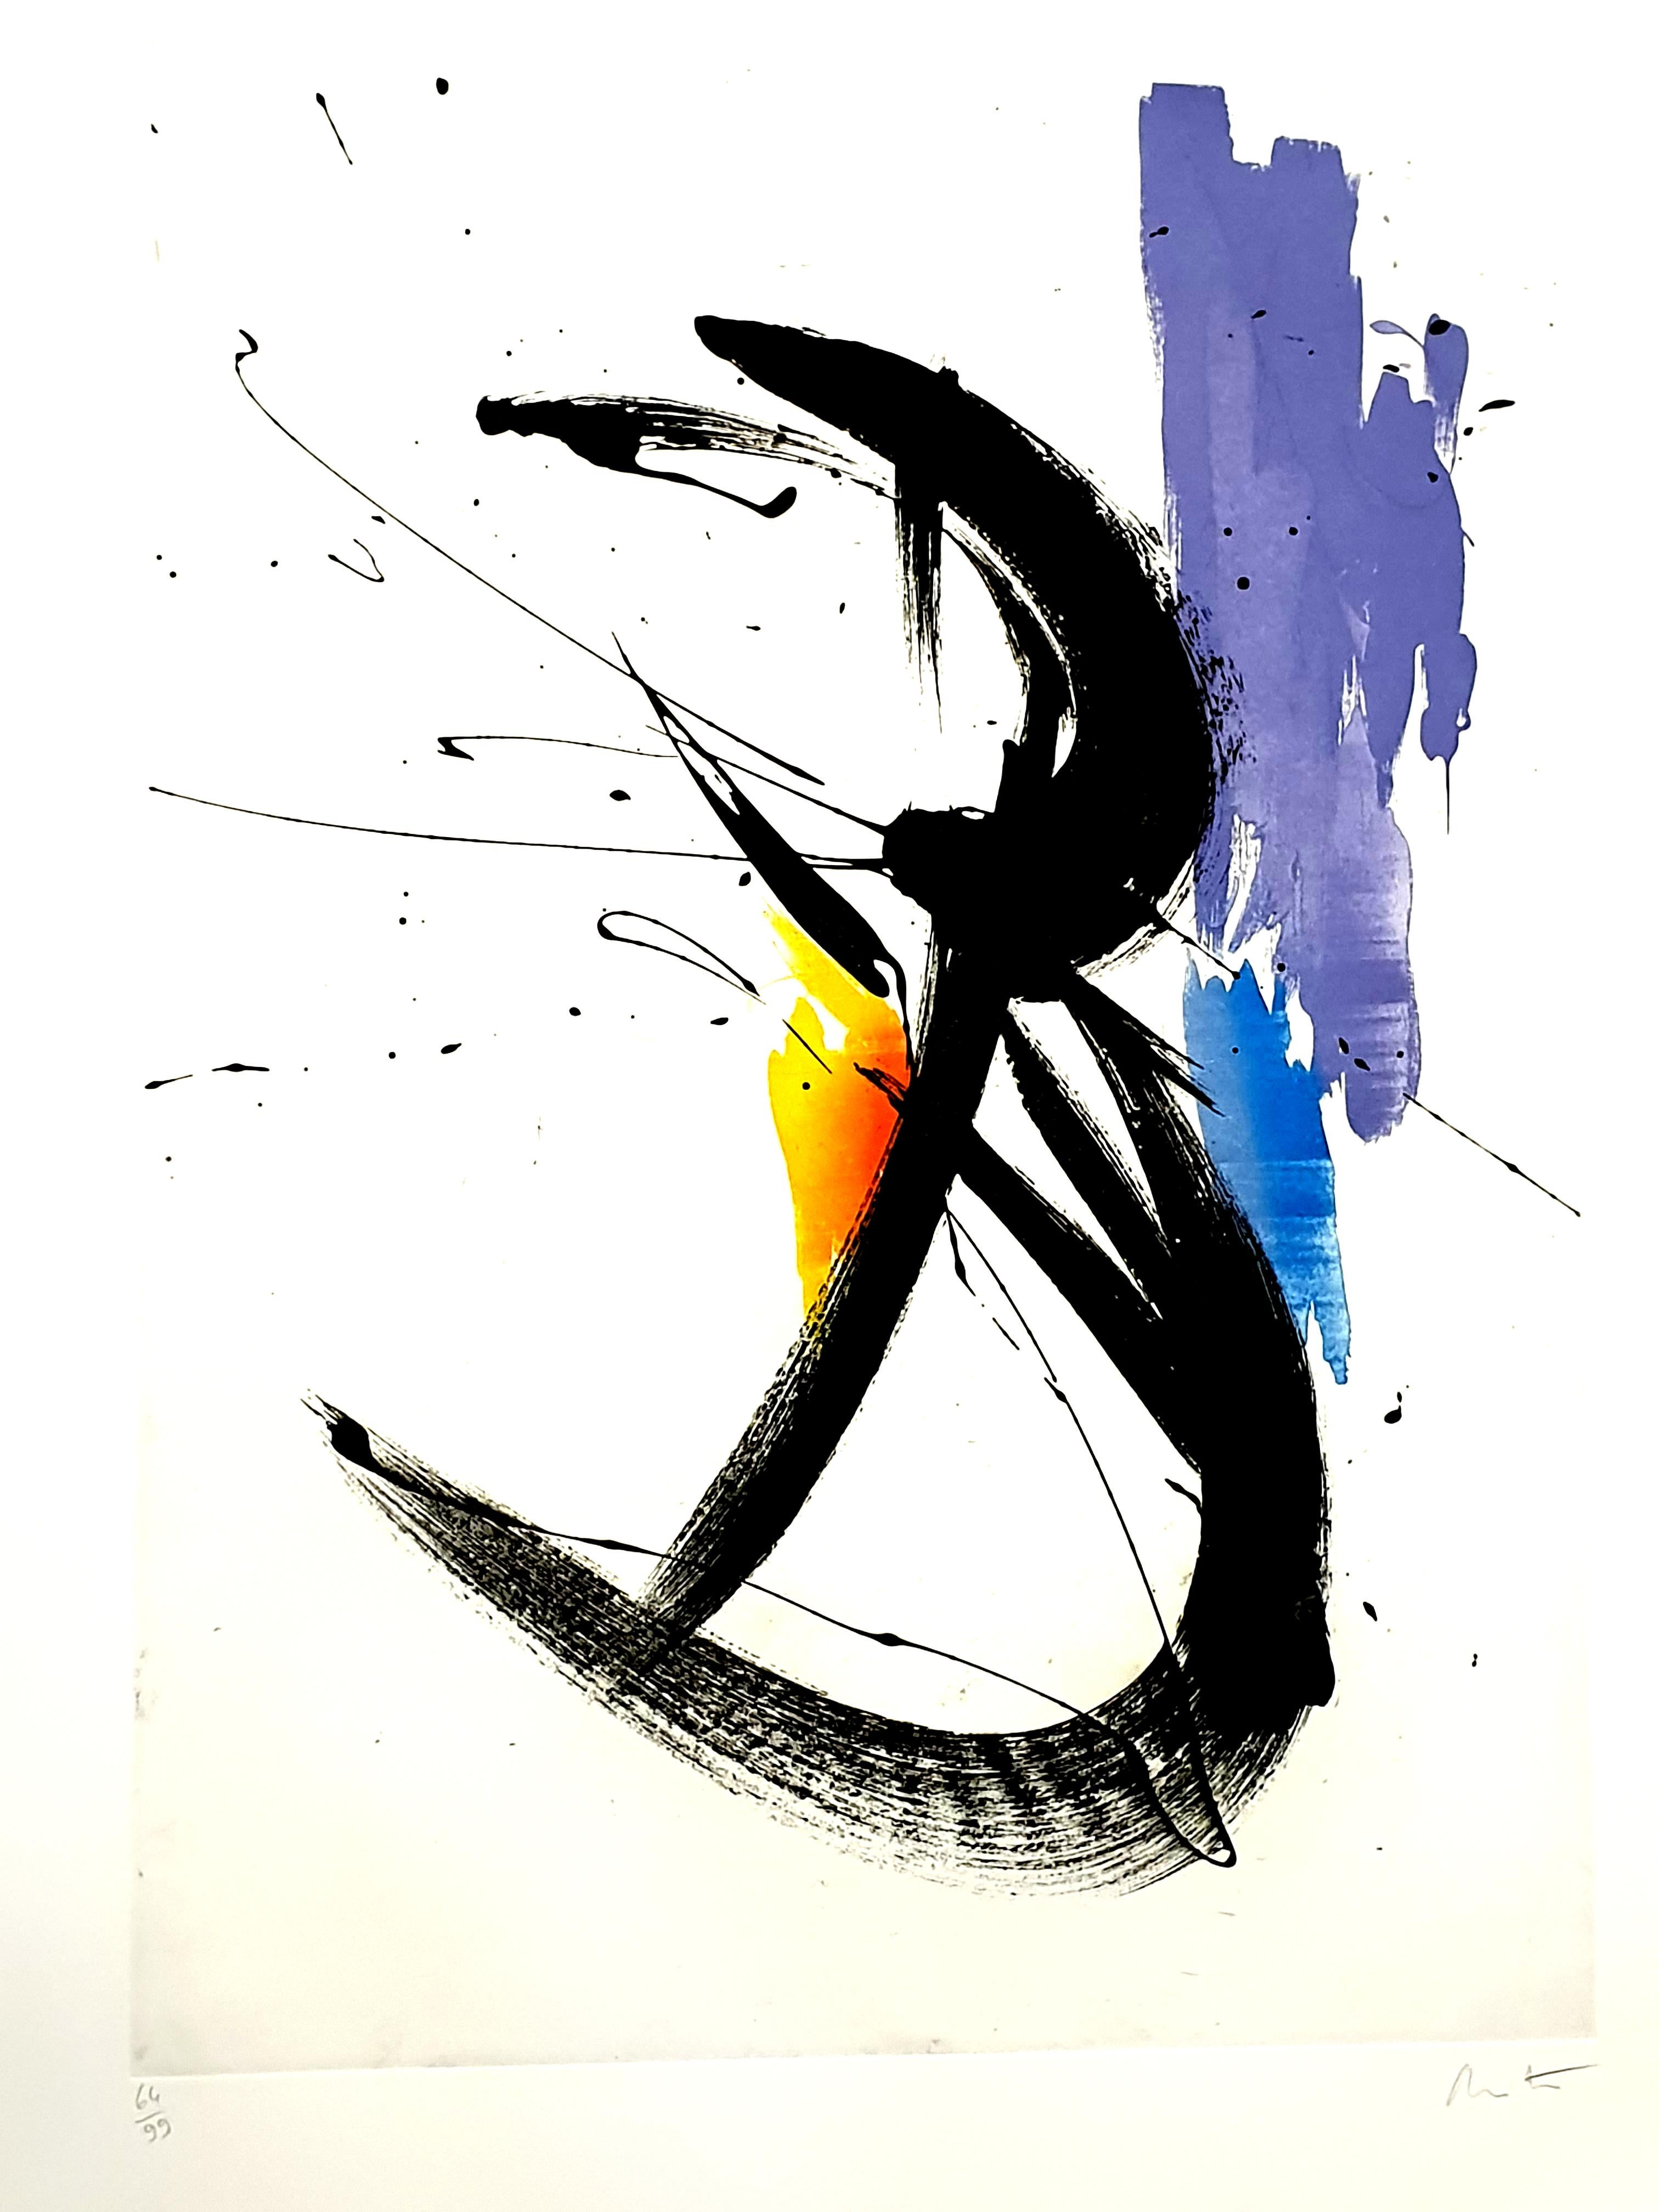 Jean Miotte - Abstract Composition - Original Signed Lithograph